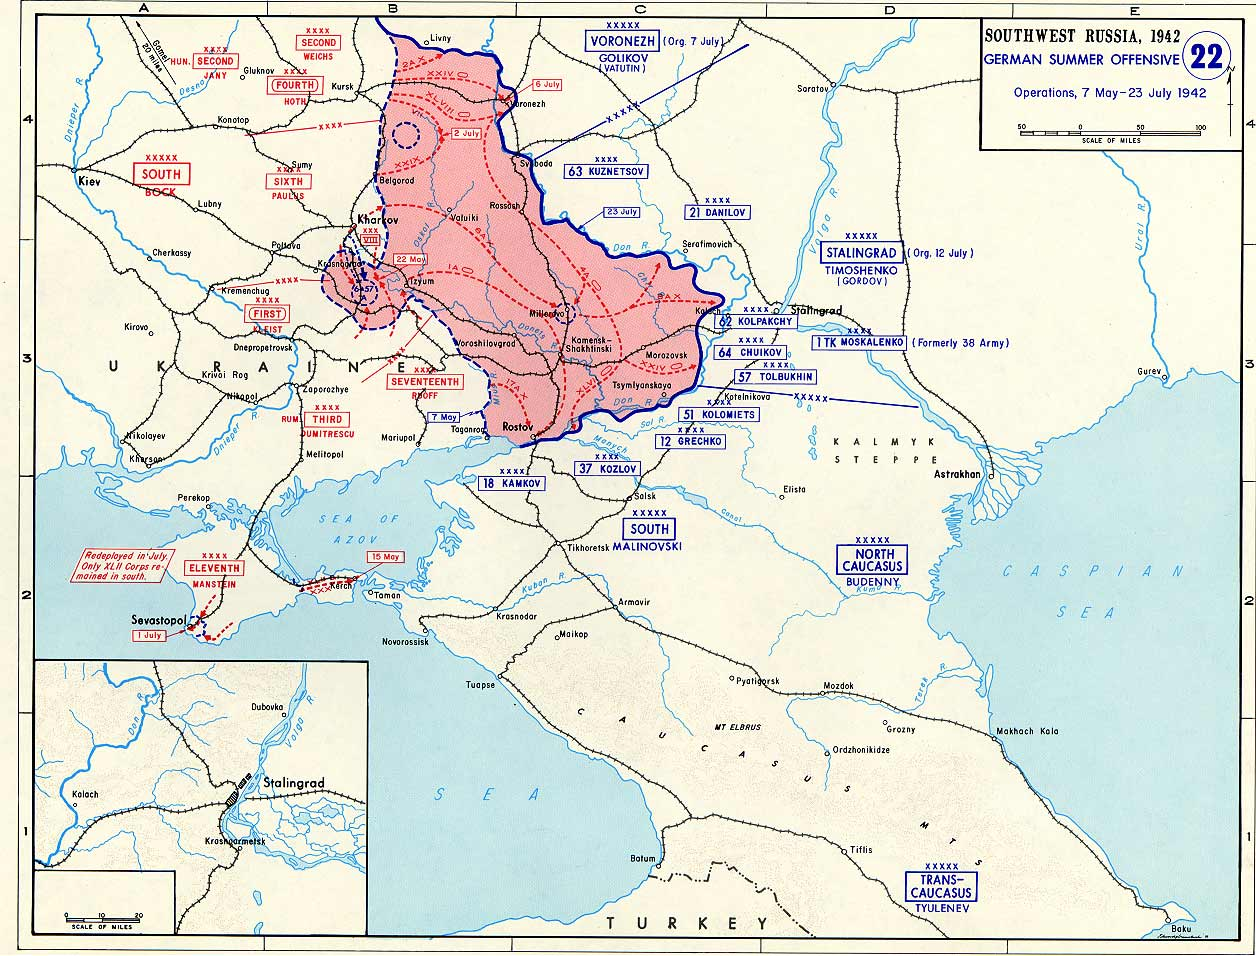 Map Of Germany And Russia.Map Of German Offensive Into Southwest Russia May July 1942